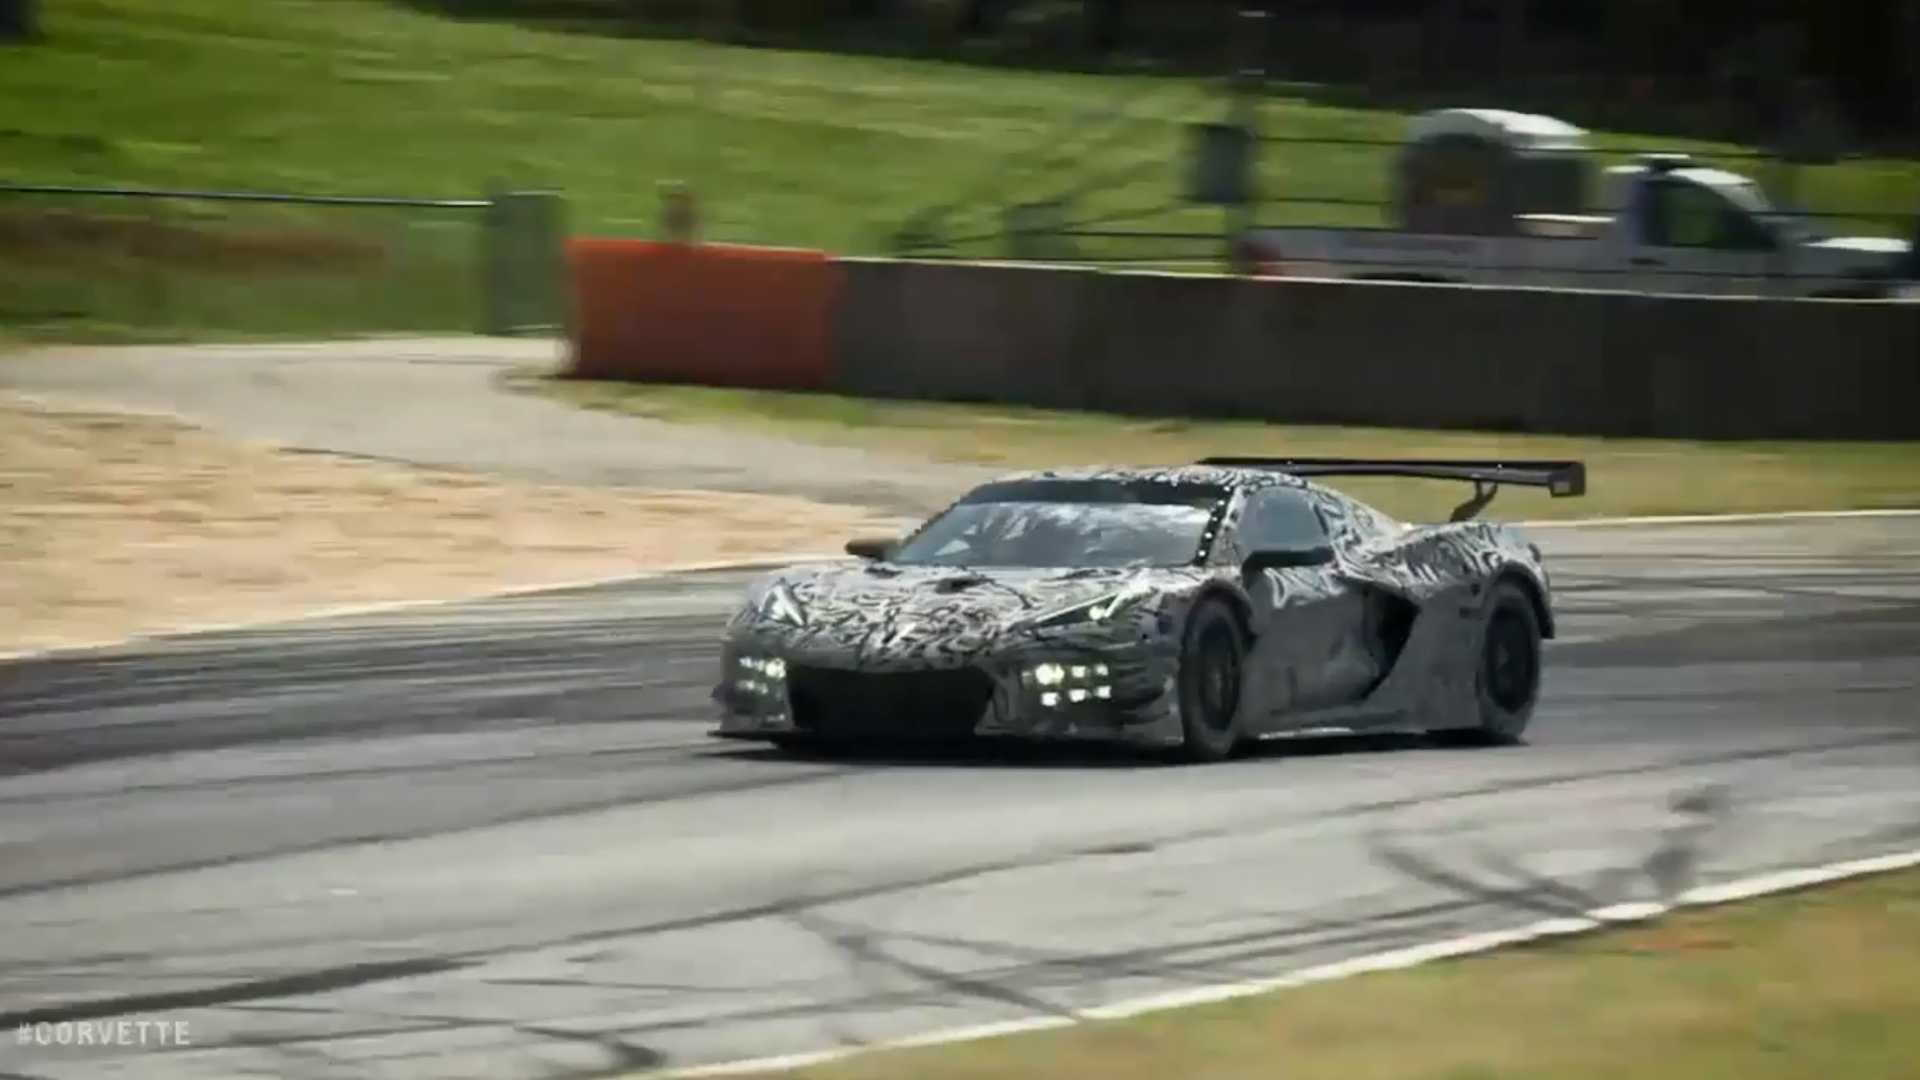 2020 Corvette Racing C8.R - CorvetteForum - Chevrolet Corvette Forum Discussion